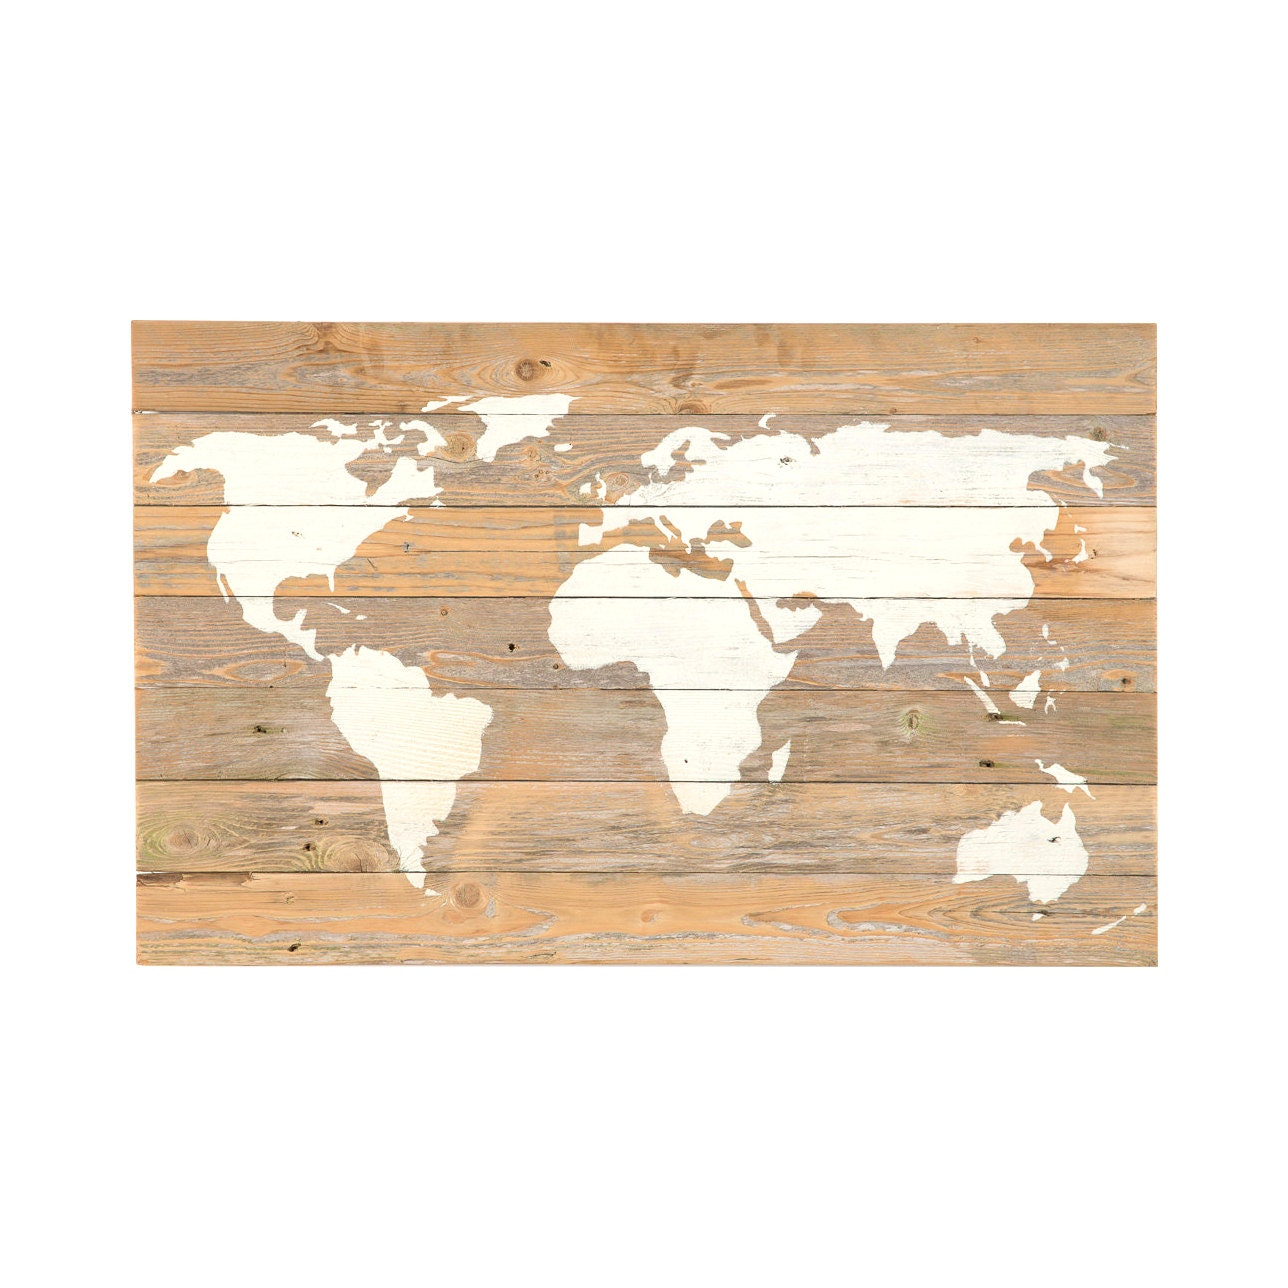 Reclaimed wood world map new lower price for Price of reclaimed barn wood